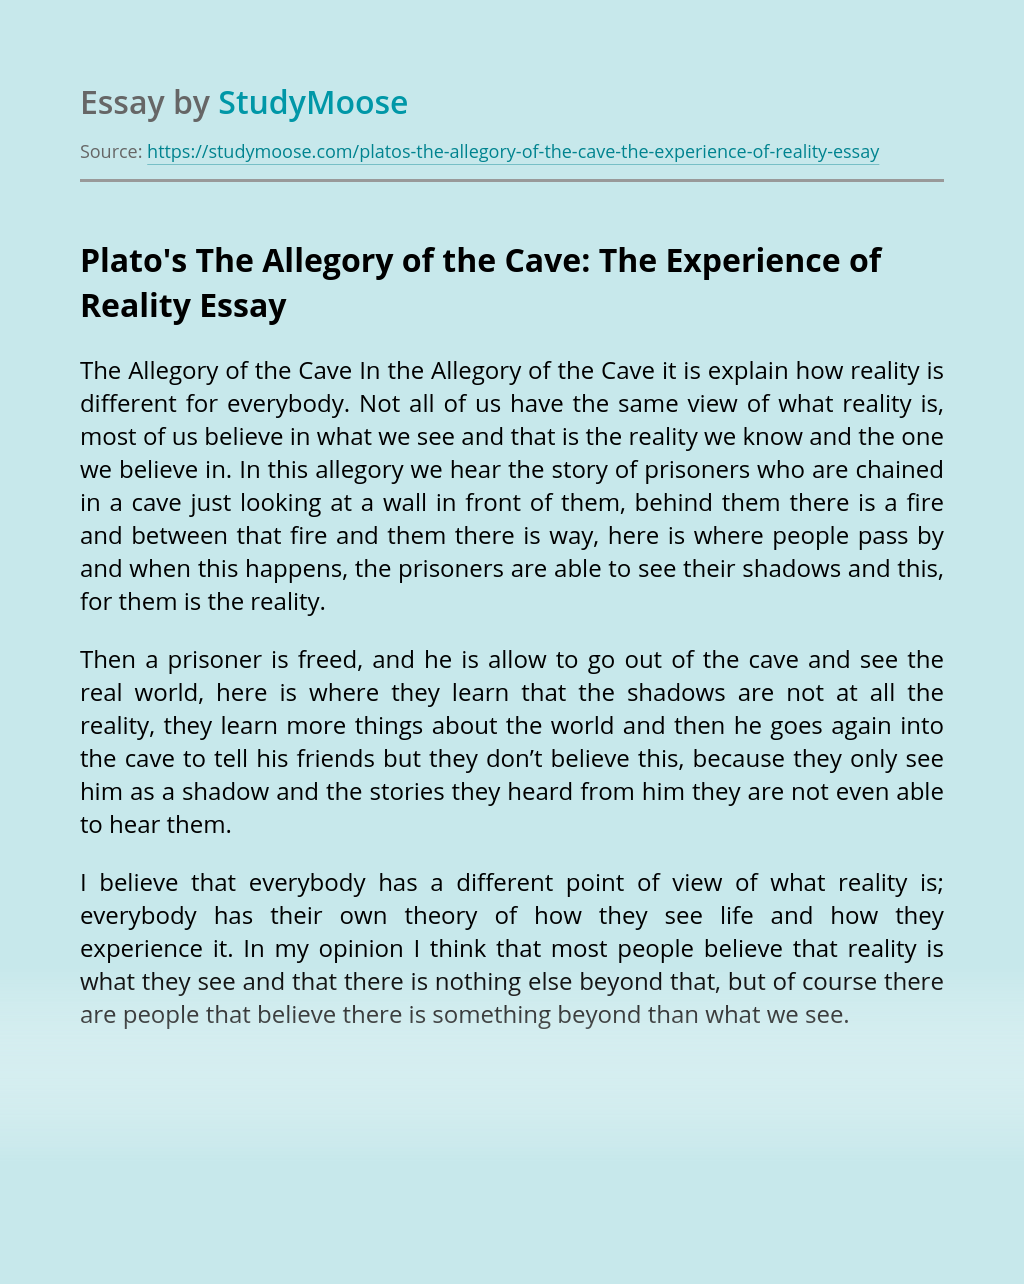 Plato's The Allegory of the Cave: The Experience of Reality